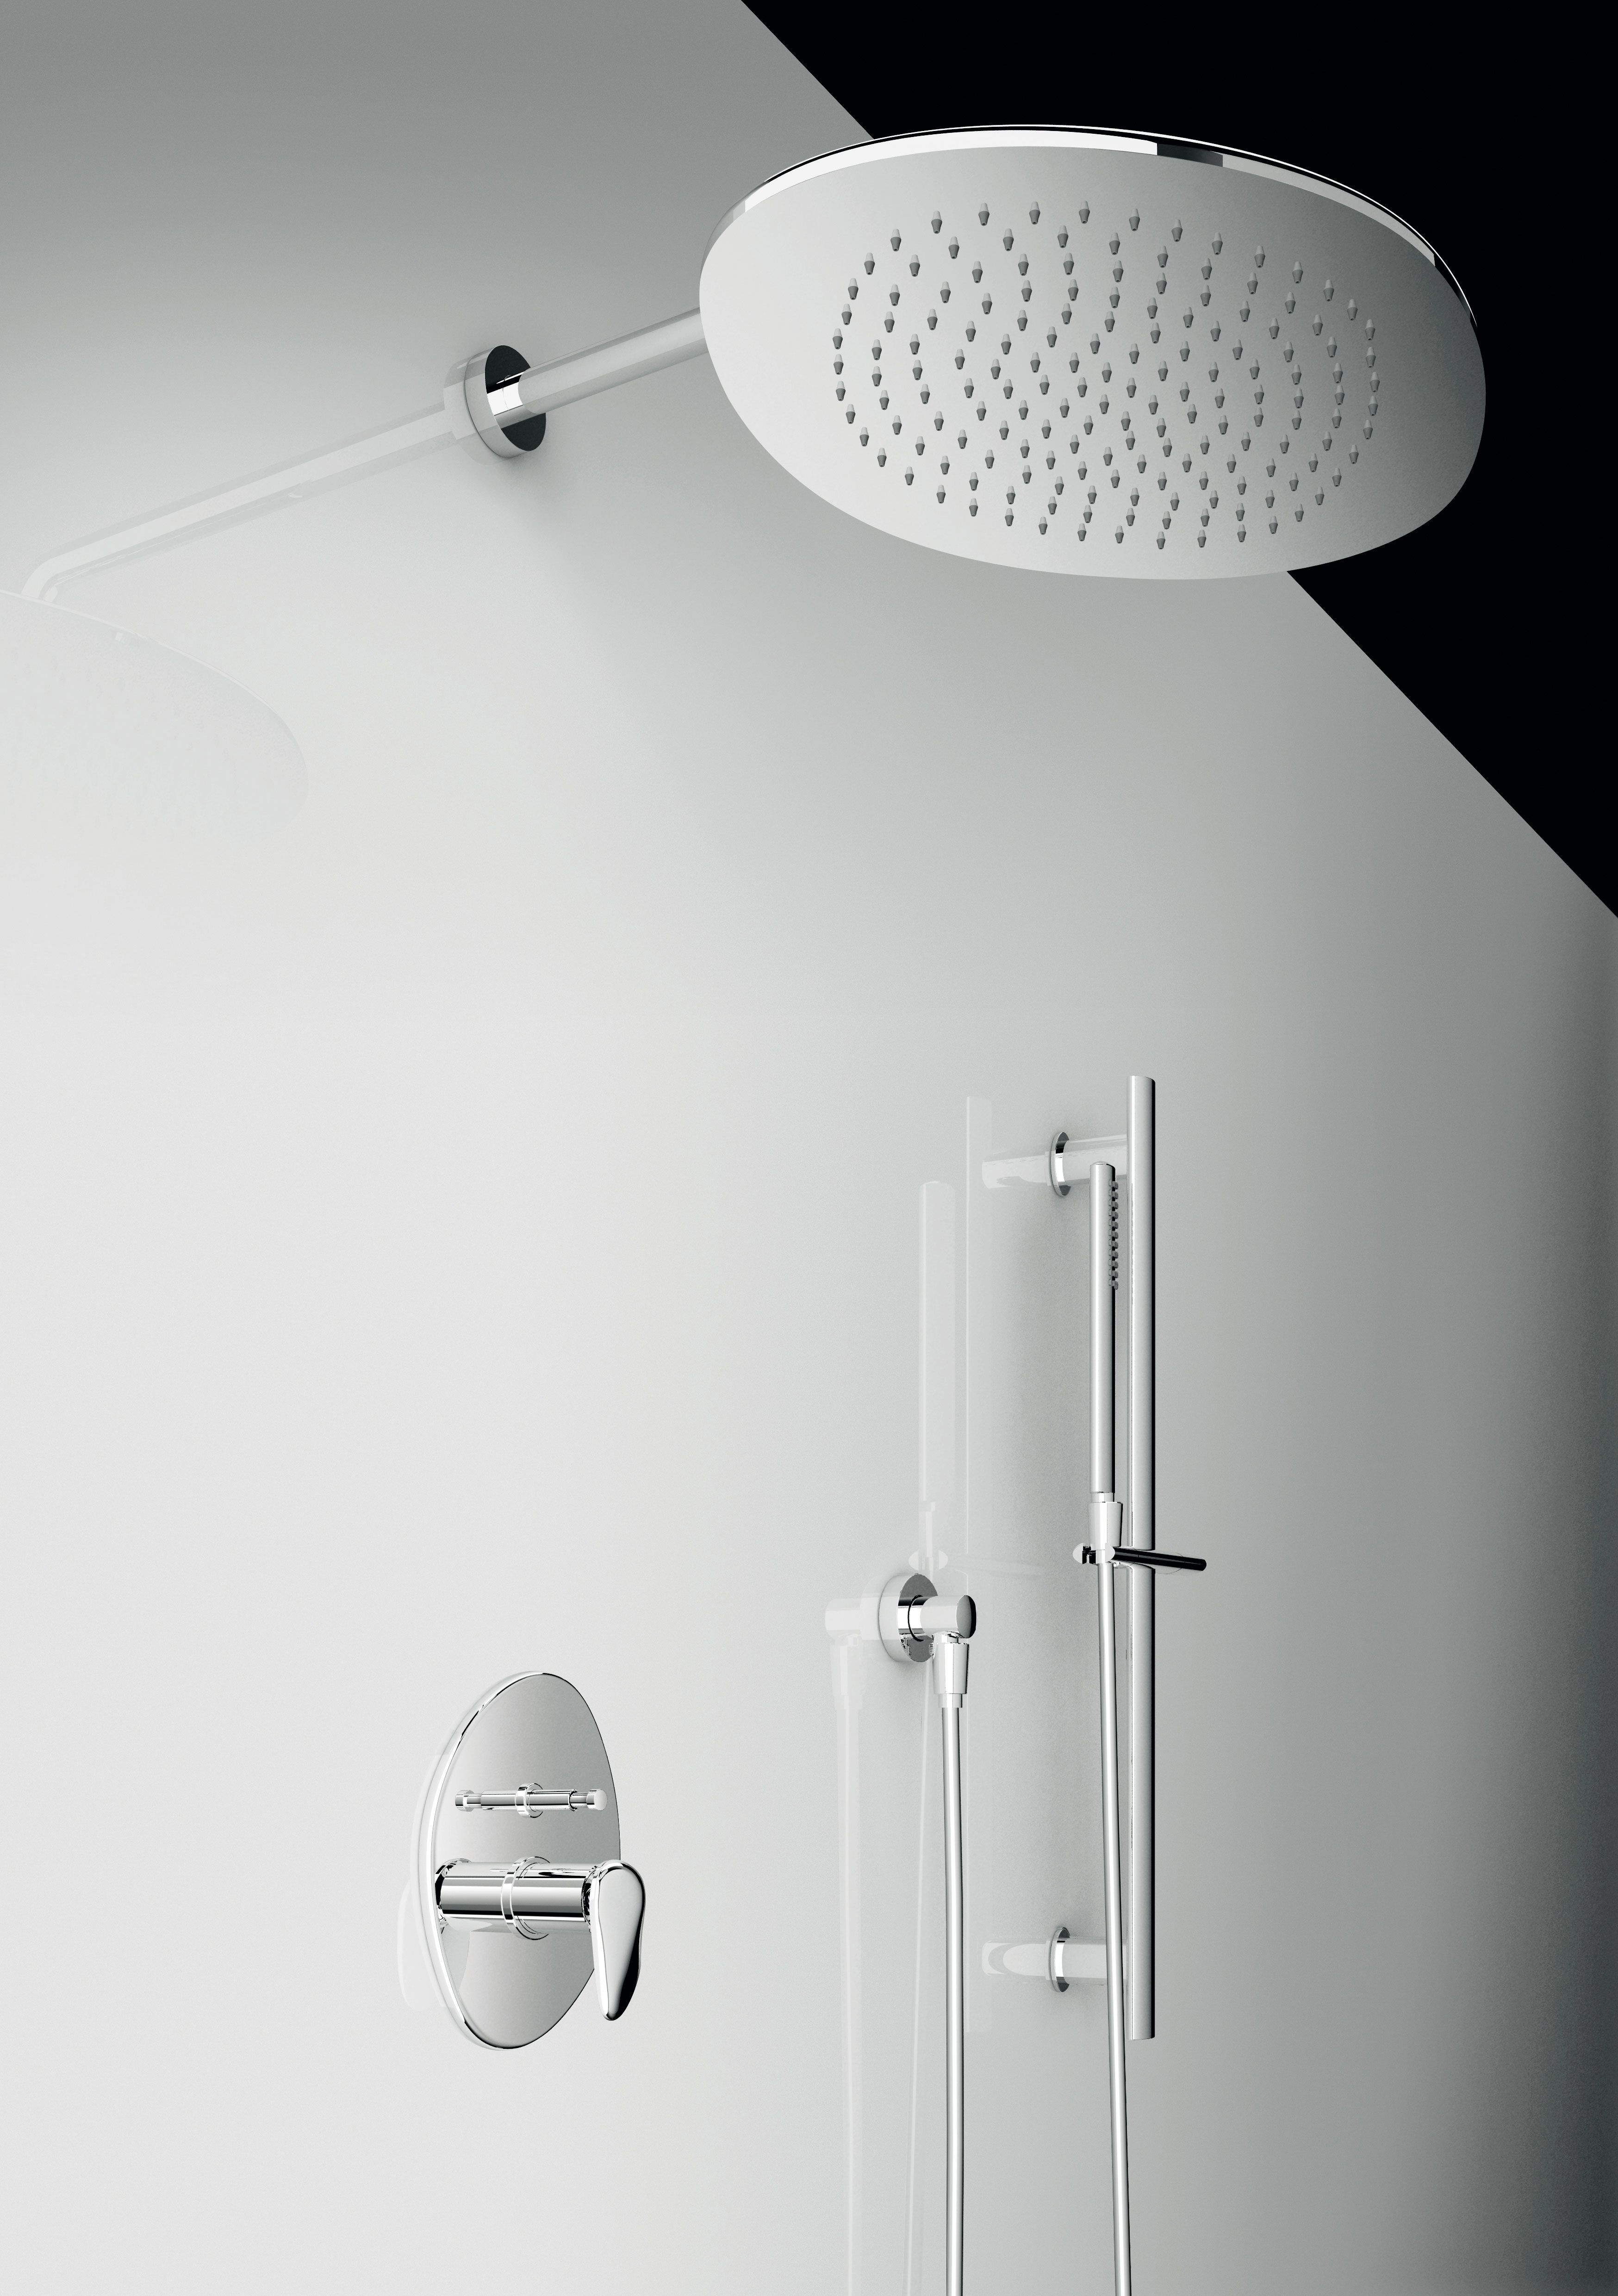 Wall-mounted shower head, Chrome finishing; wall-mounted built-in ...